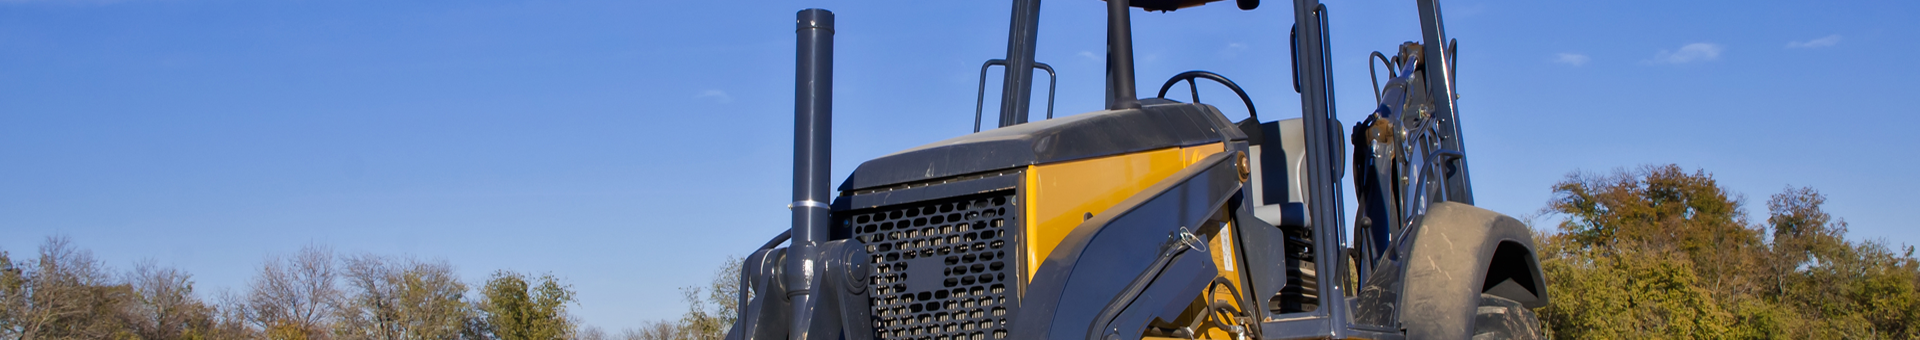 Used Tractors For Sale Online from bidadoo Auctions